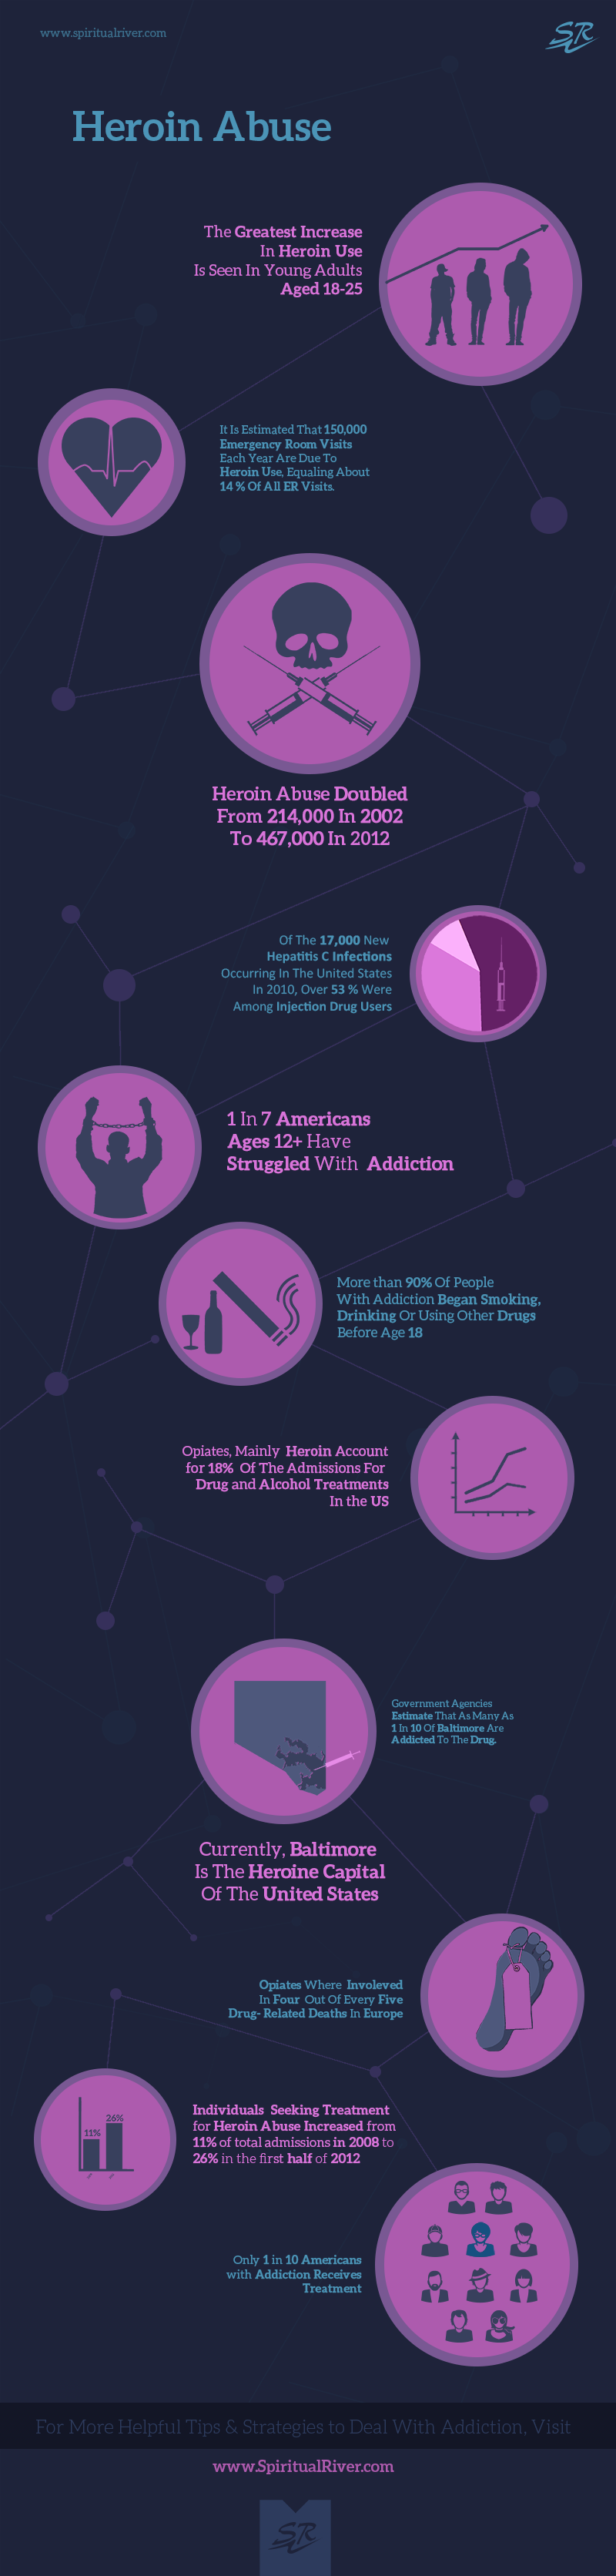 heroin-addiction-abuse-infographic